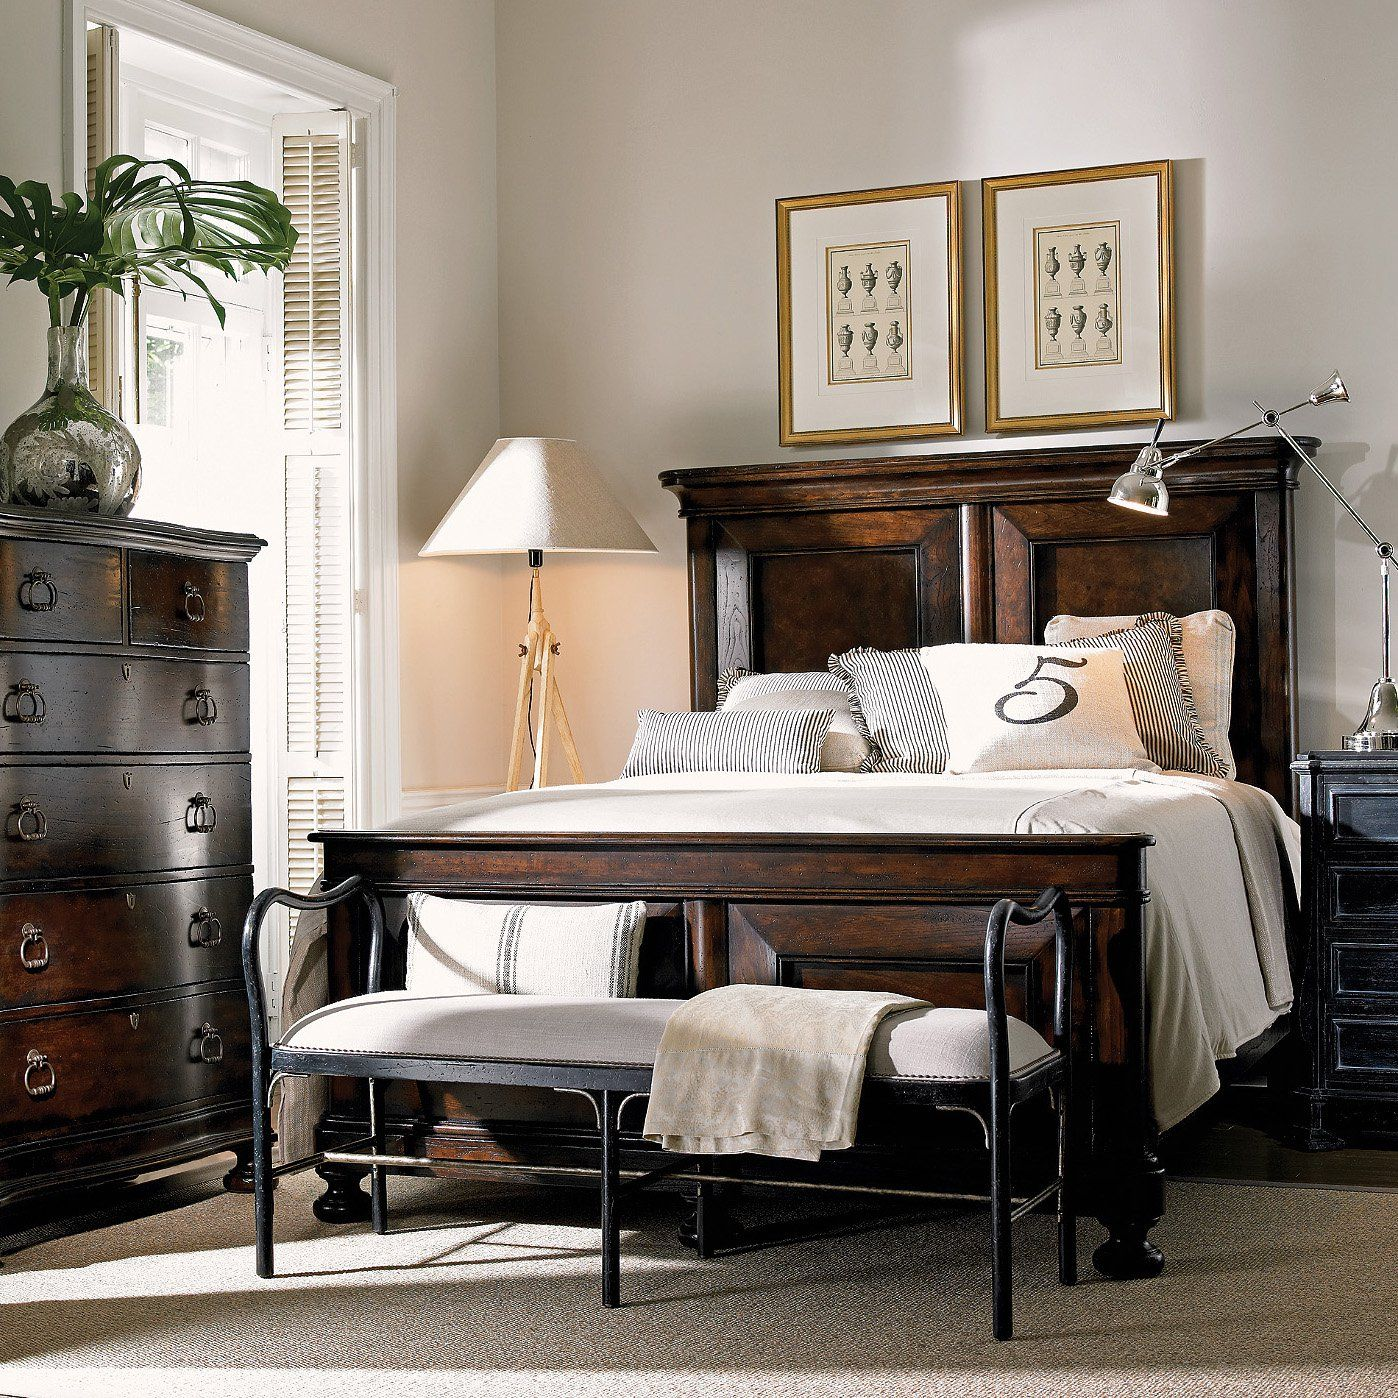 Pinesdale Panel Bed & Reviews Birch Lane Iron bed